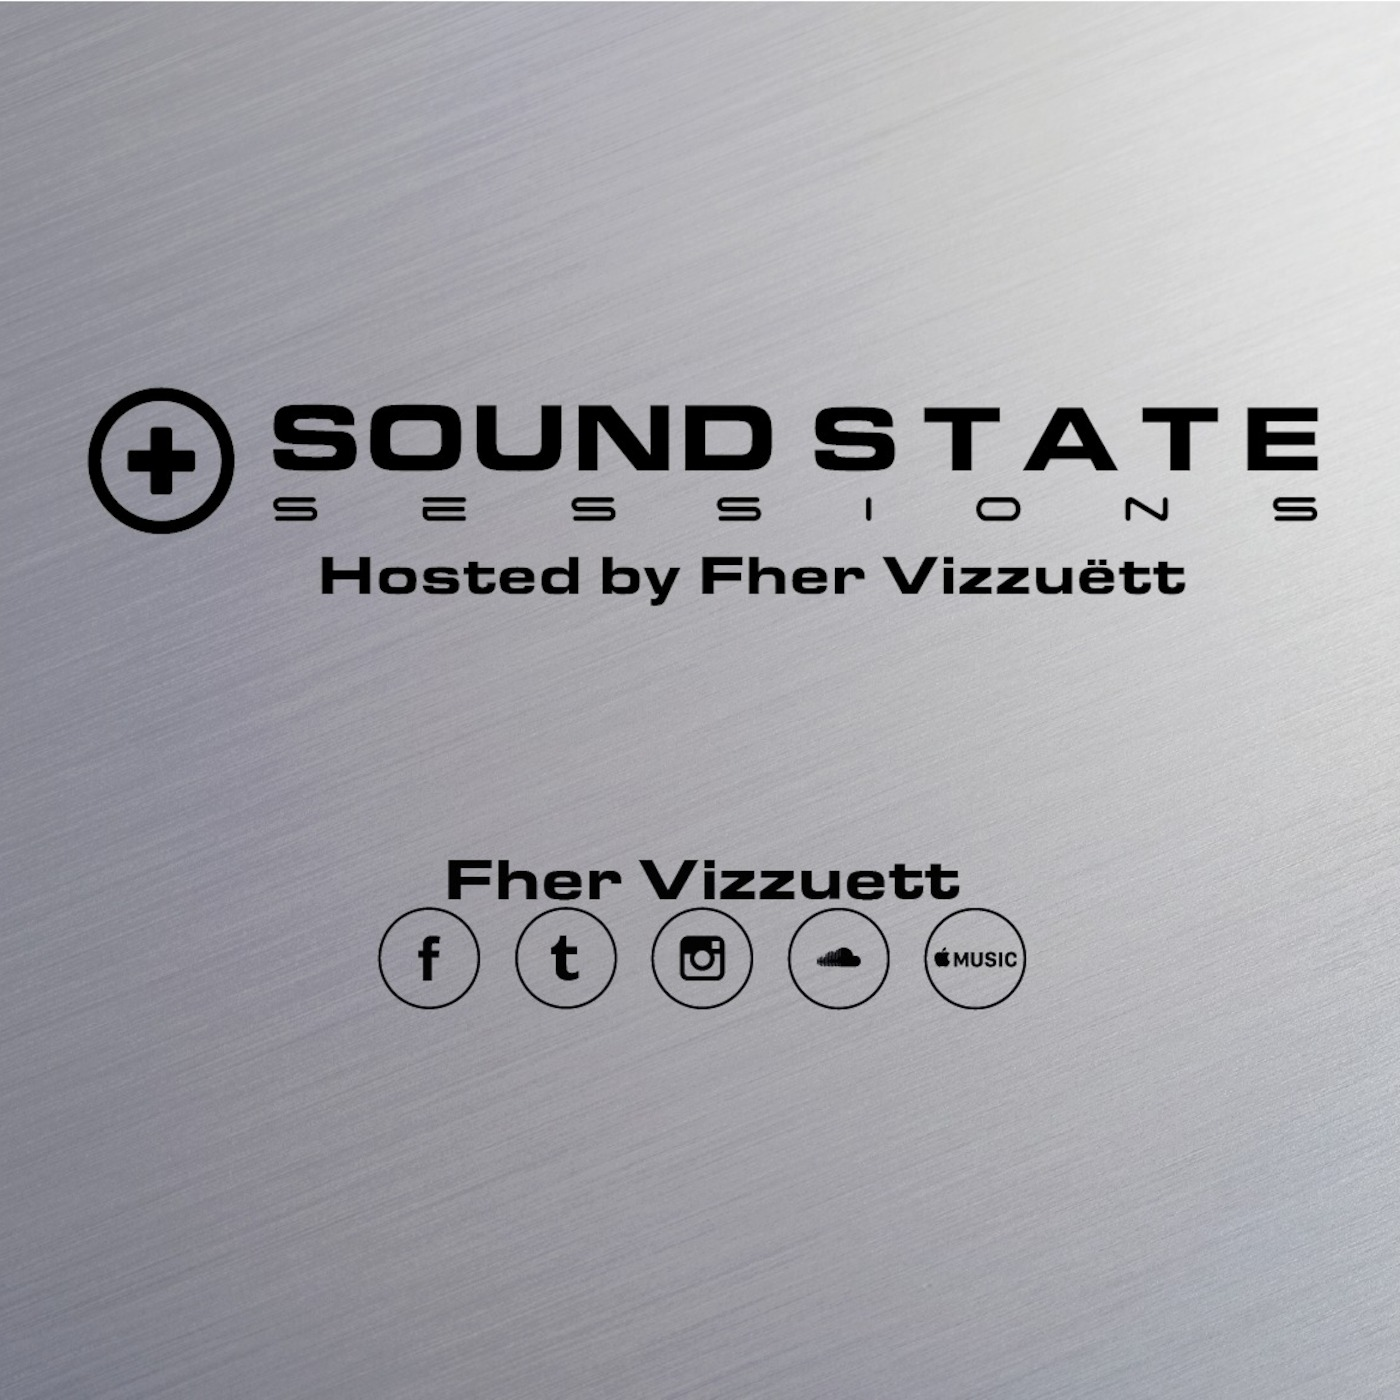 Sound State Sessions